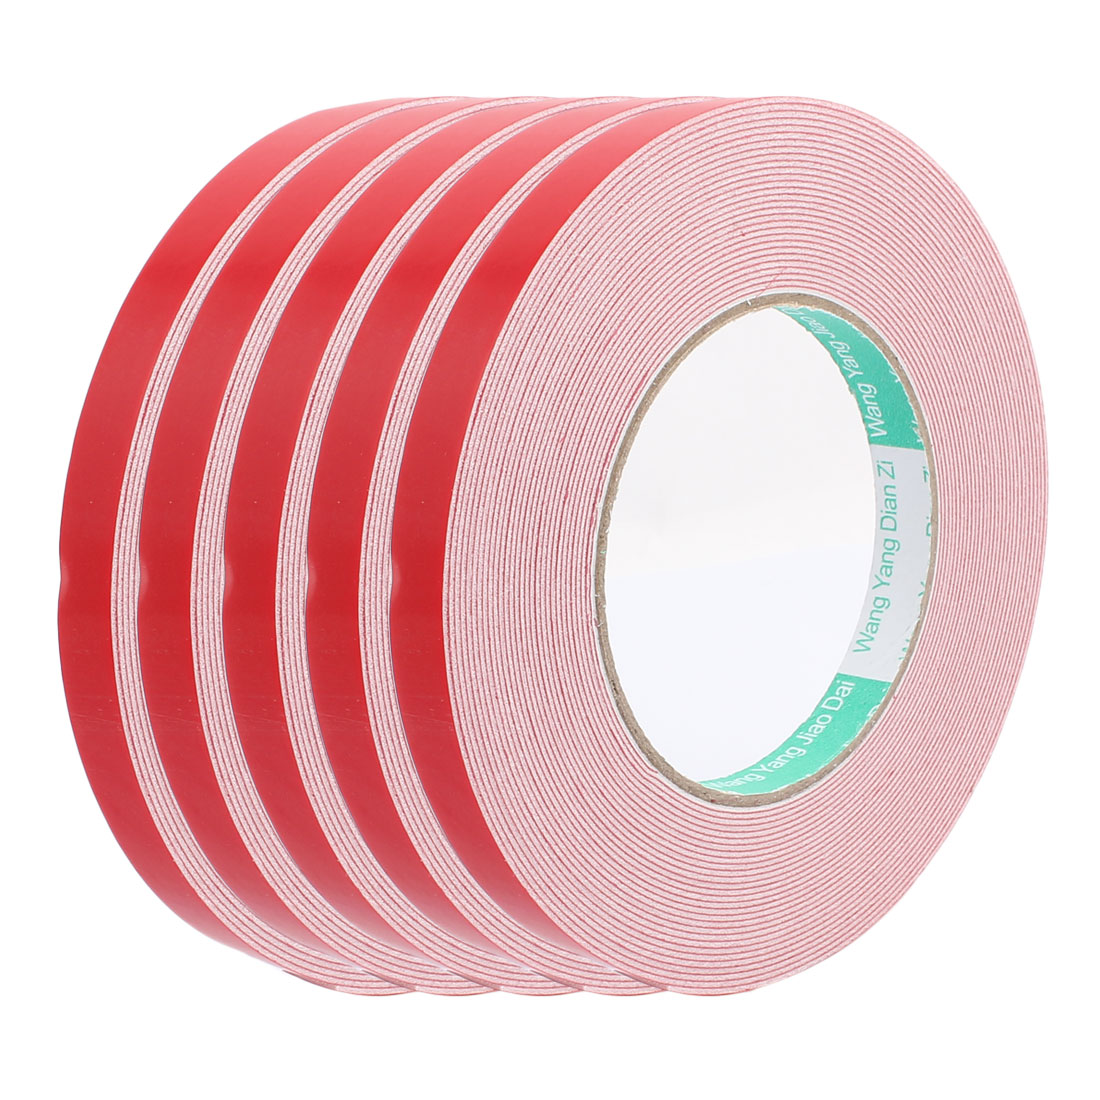 5pcs 10M 12mm x 1mm Dual-side Adhesive Shockproof Sponge Foam Tape Red White